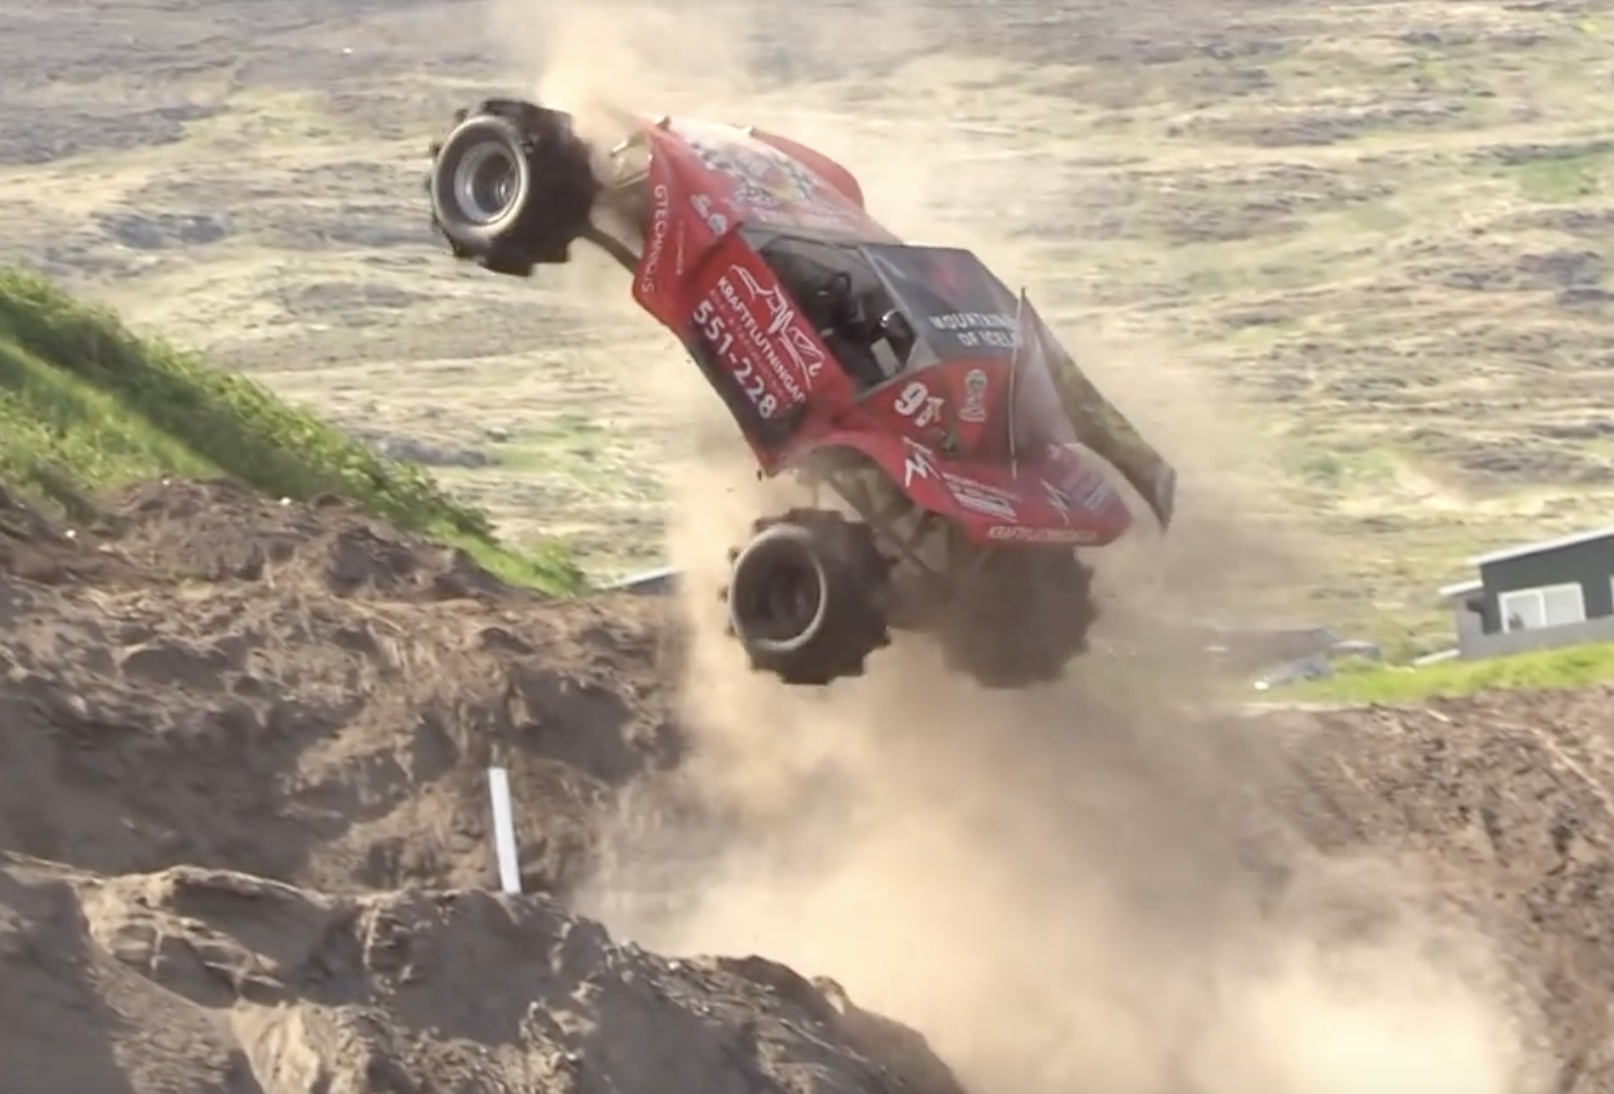 Formula Offroad Footage: Throwing The Dirt And The Trucks Into The Air!